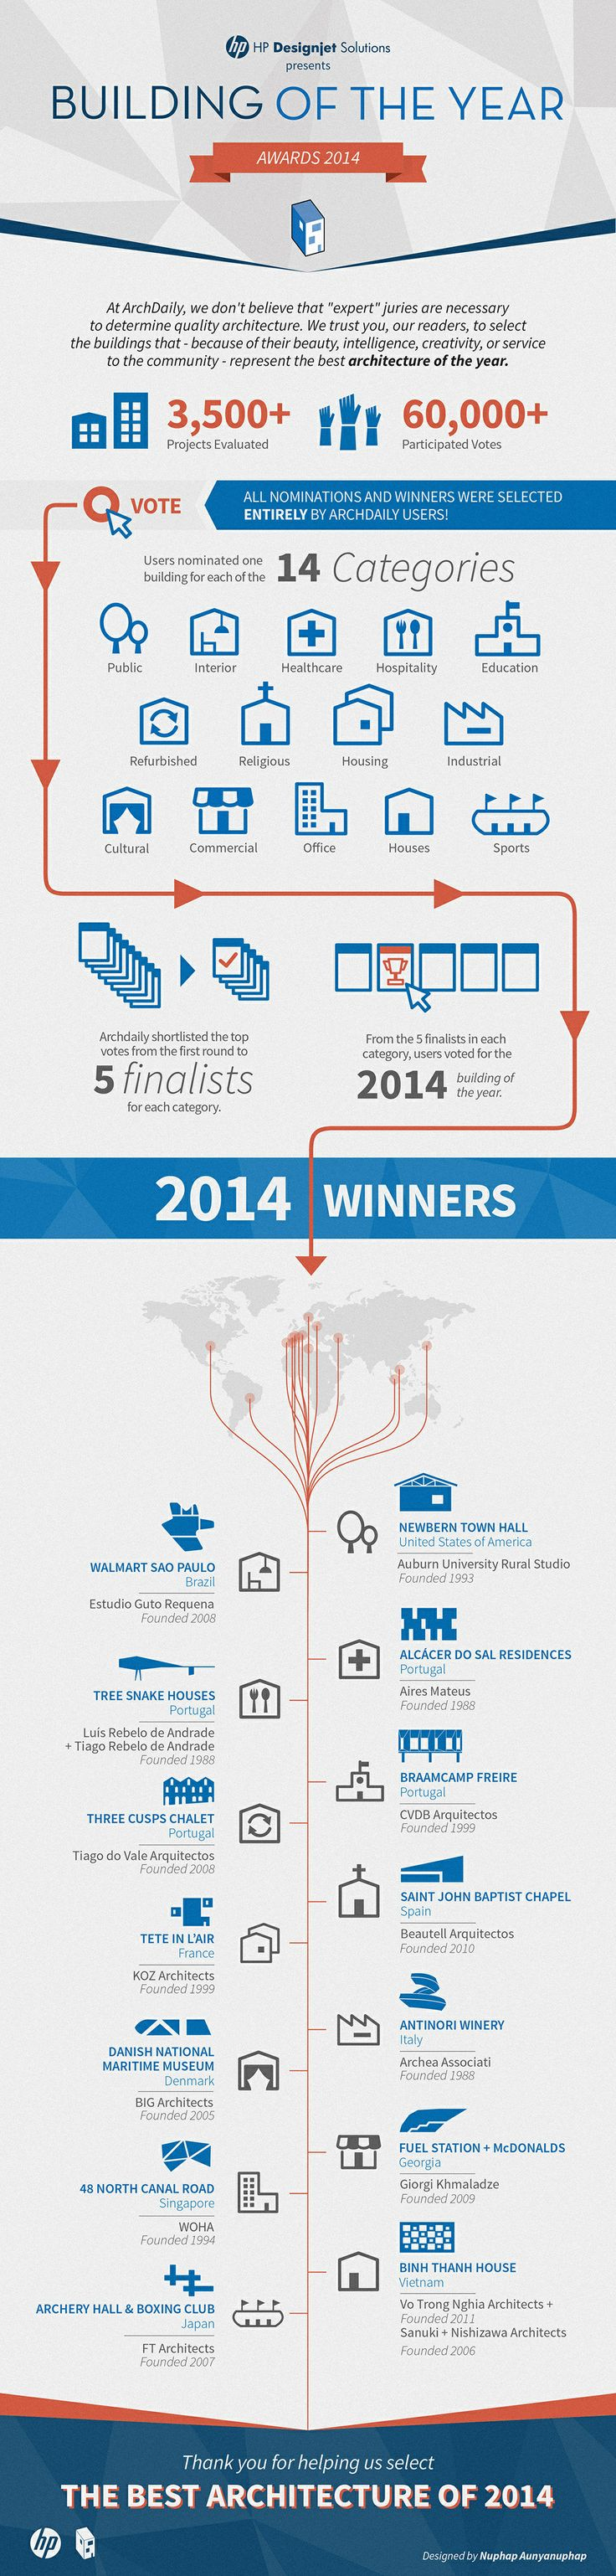 infographic-building-of-the-year-awards-2014_archdaily_infographic